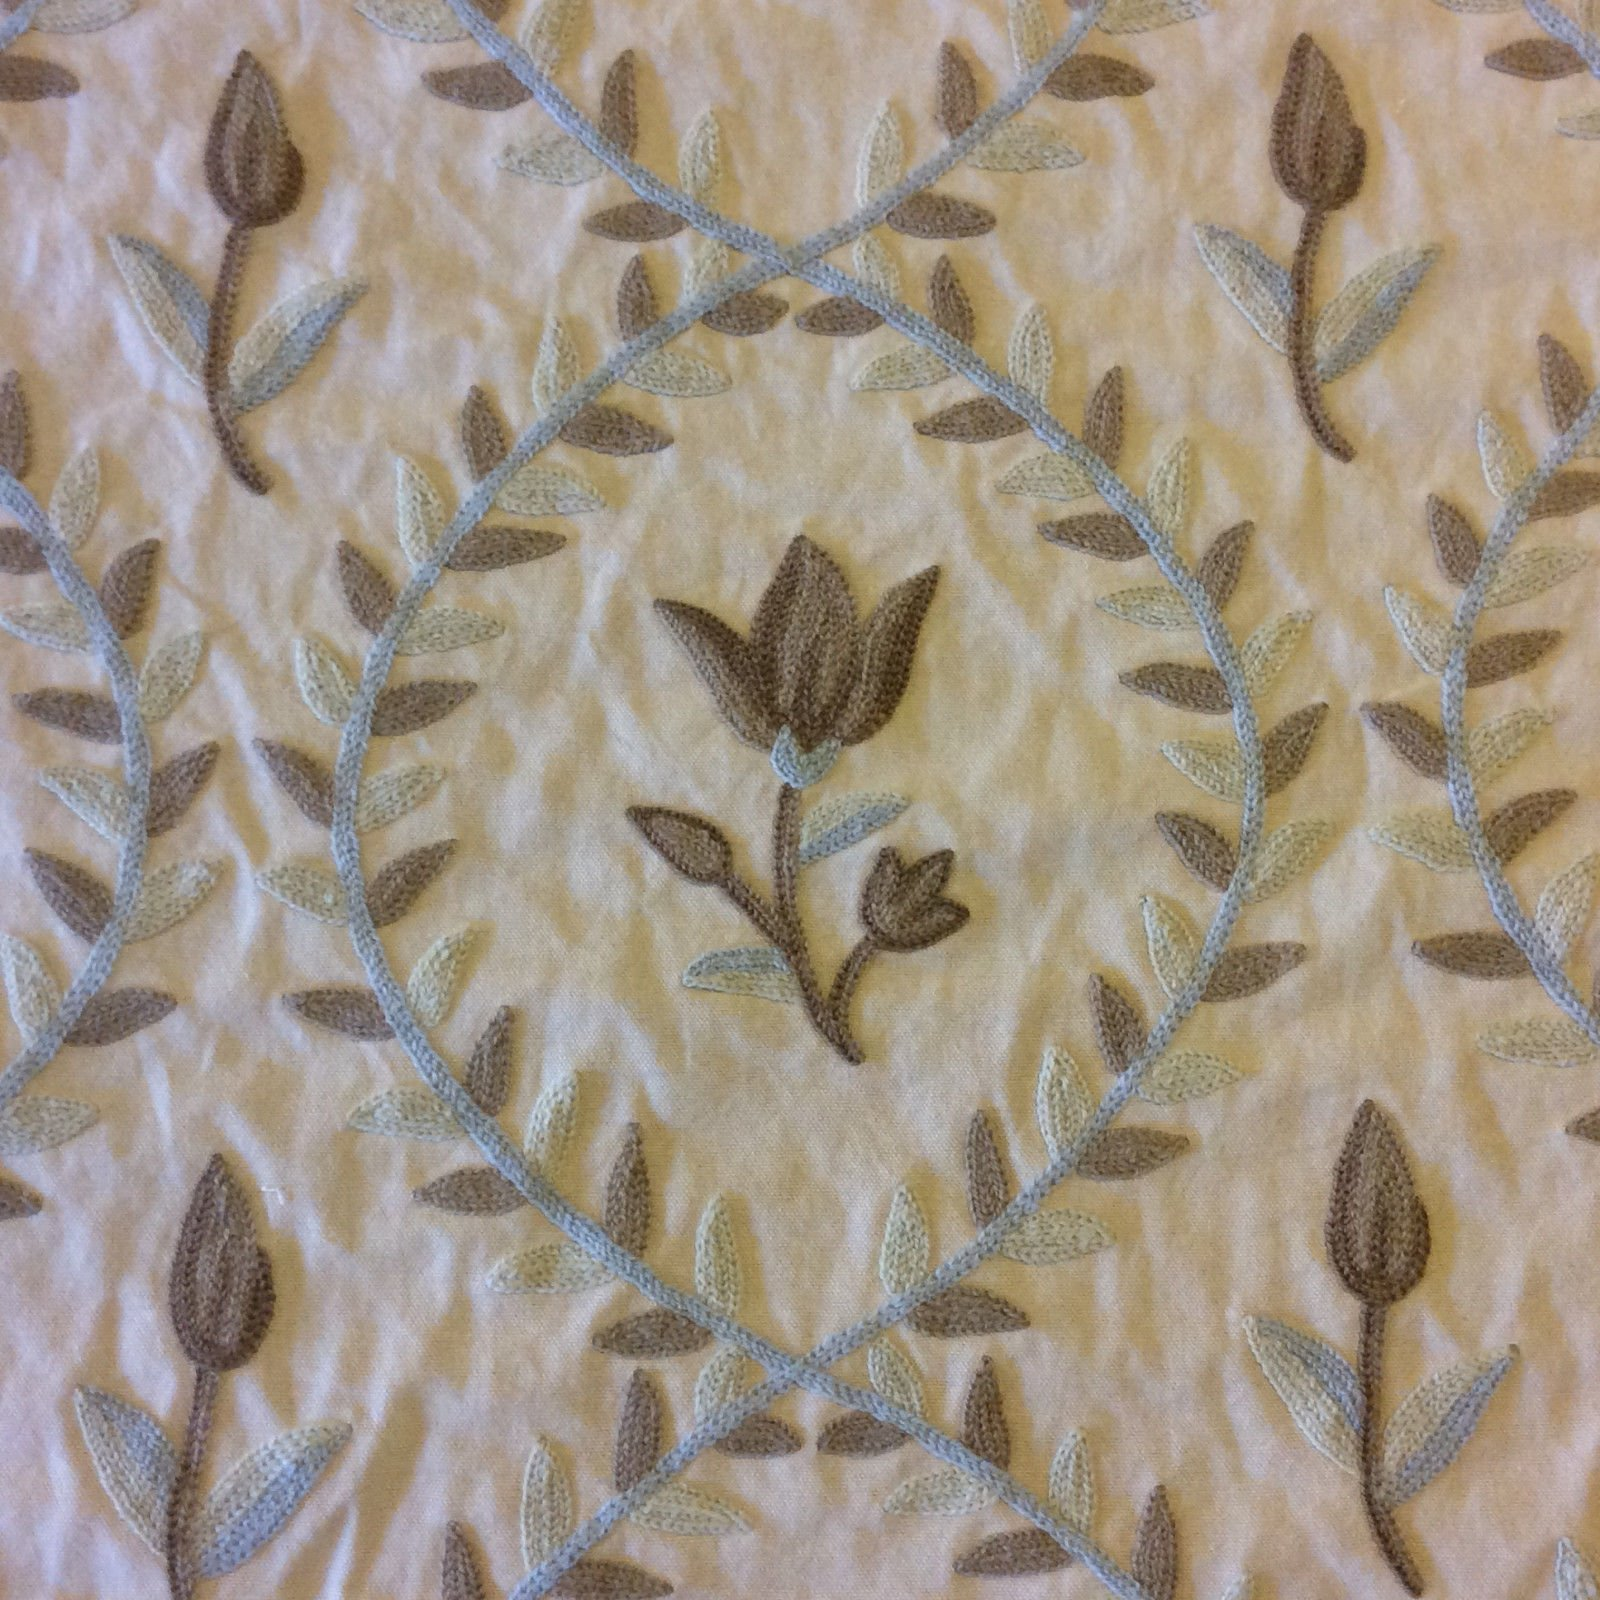 Crewel Exquisite Chainstitch Embroidered Cotton Floral Home Decor Fabric NL085